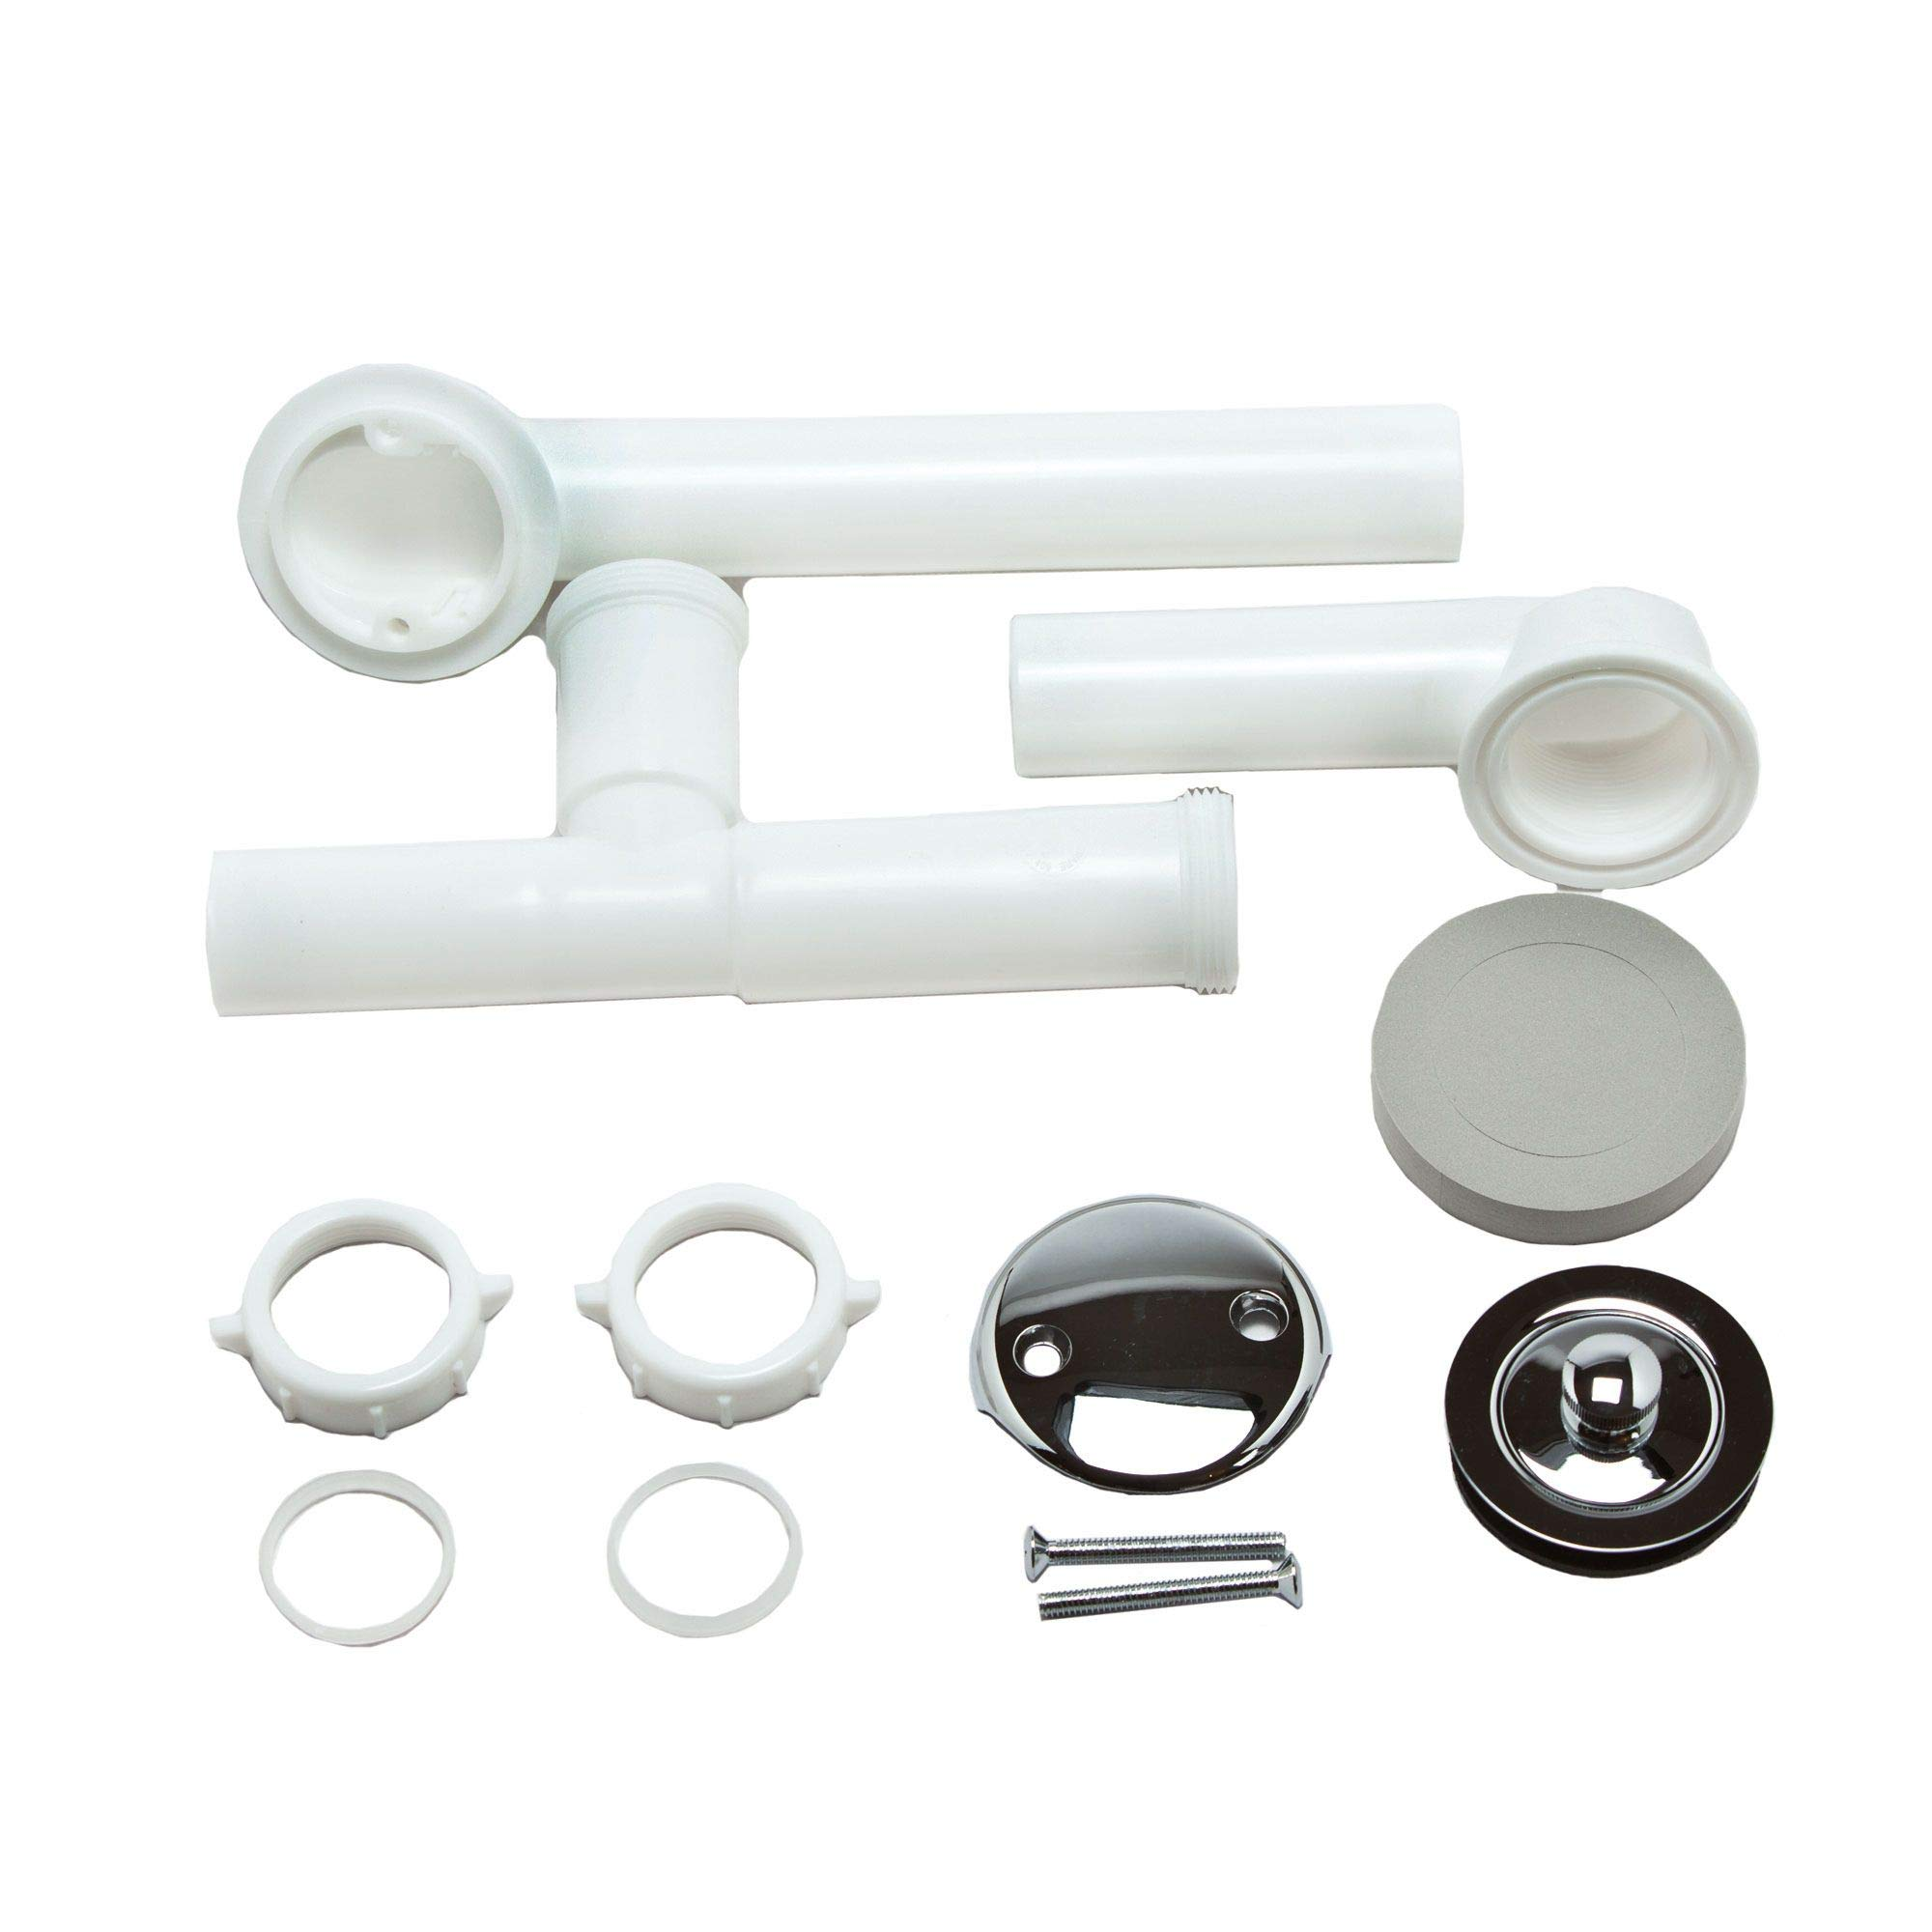 MOEN 90530 Tub/Shower Assembly with Lift-N-Drain, 1-1/2 in, Threaded Shoe, PVC, Chrome